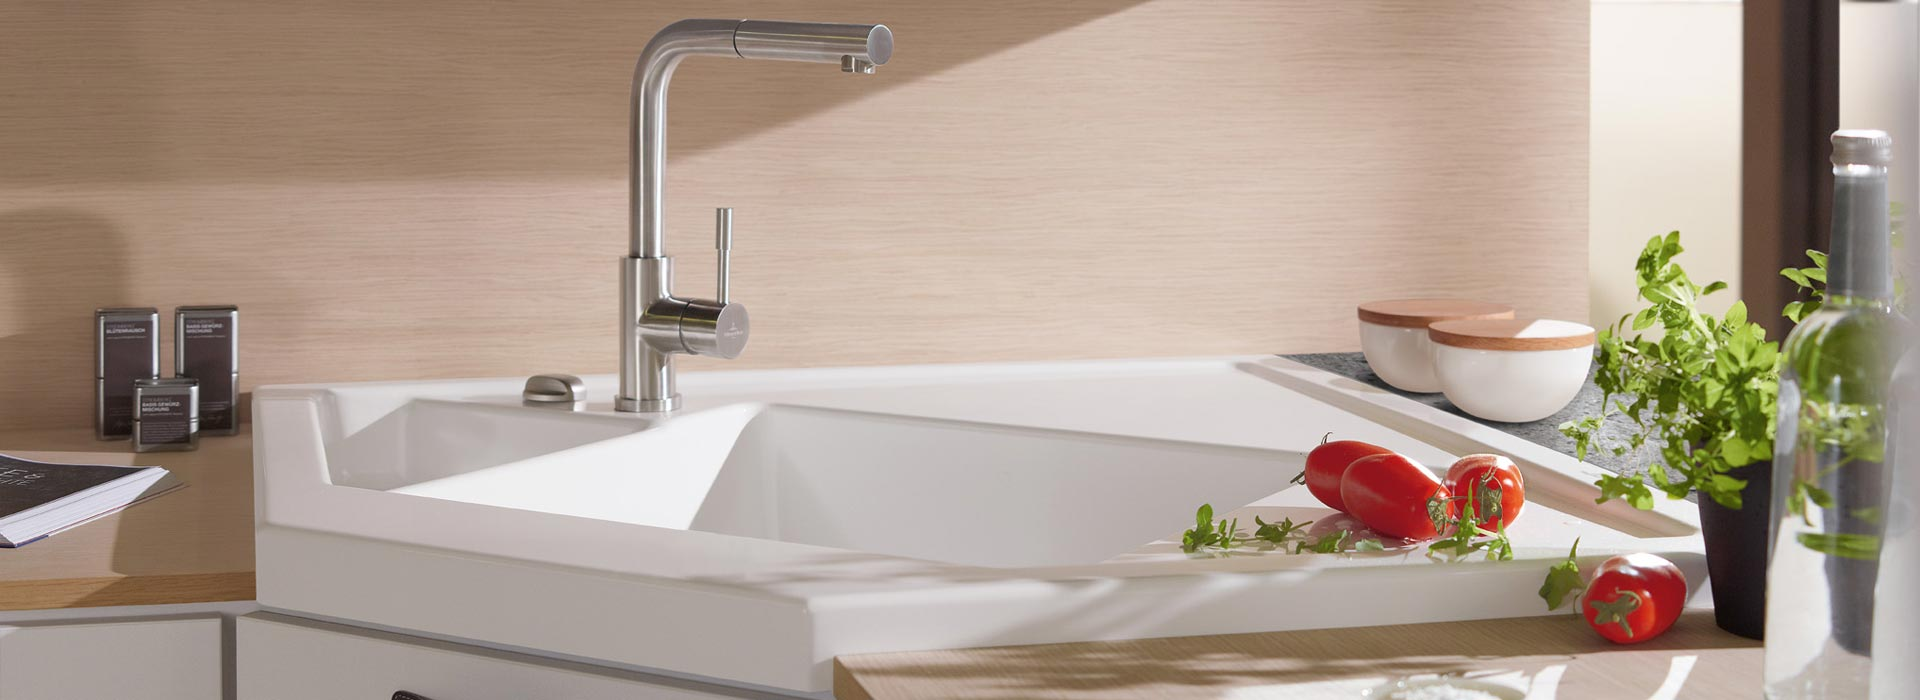 High quality ceramic sink from villeroy boch monumentum workwithnaturefo